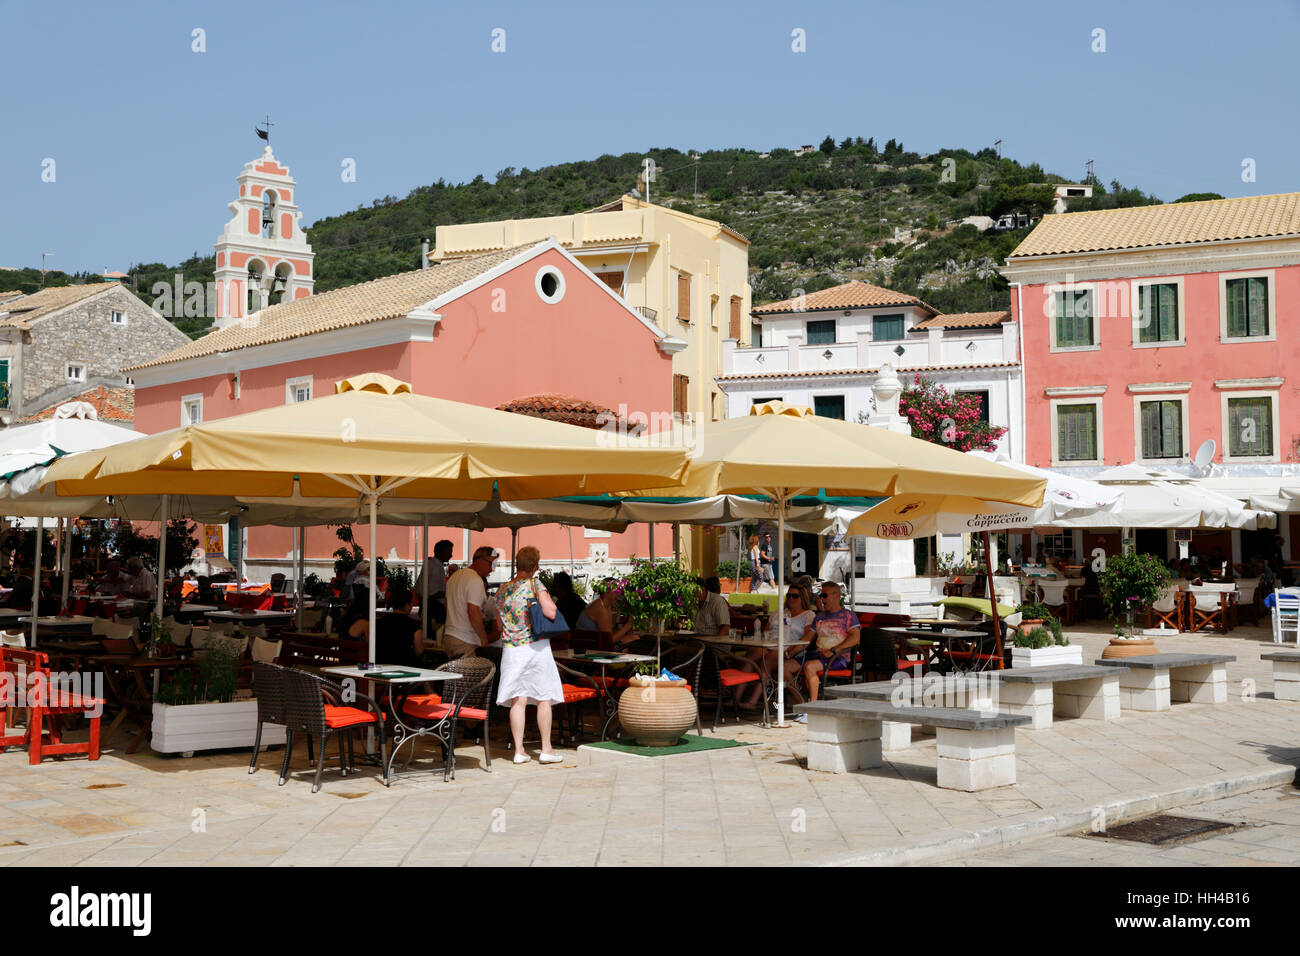 Cafés and restaurants in main square of Gaios town, Paxos, Ionian Islands, Greek Islands, Greece, Europe - Stock Image